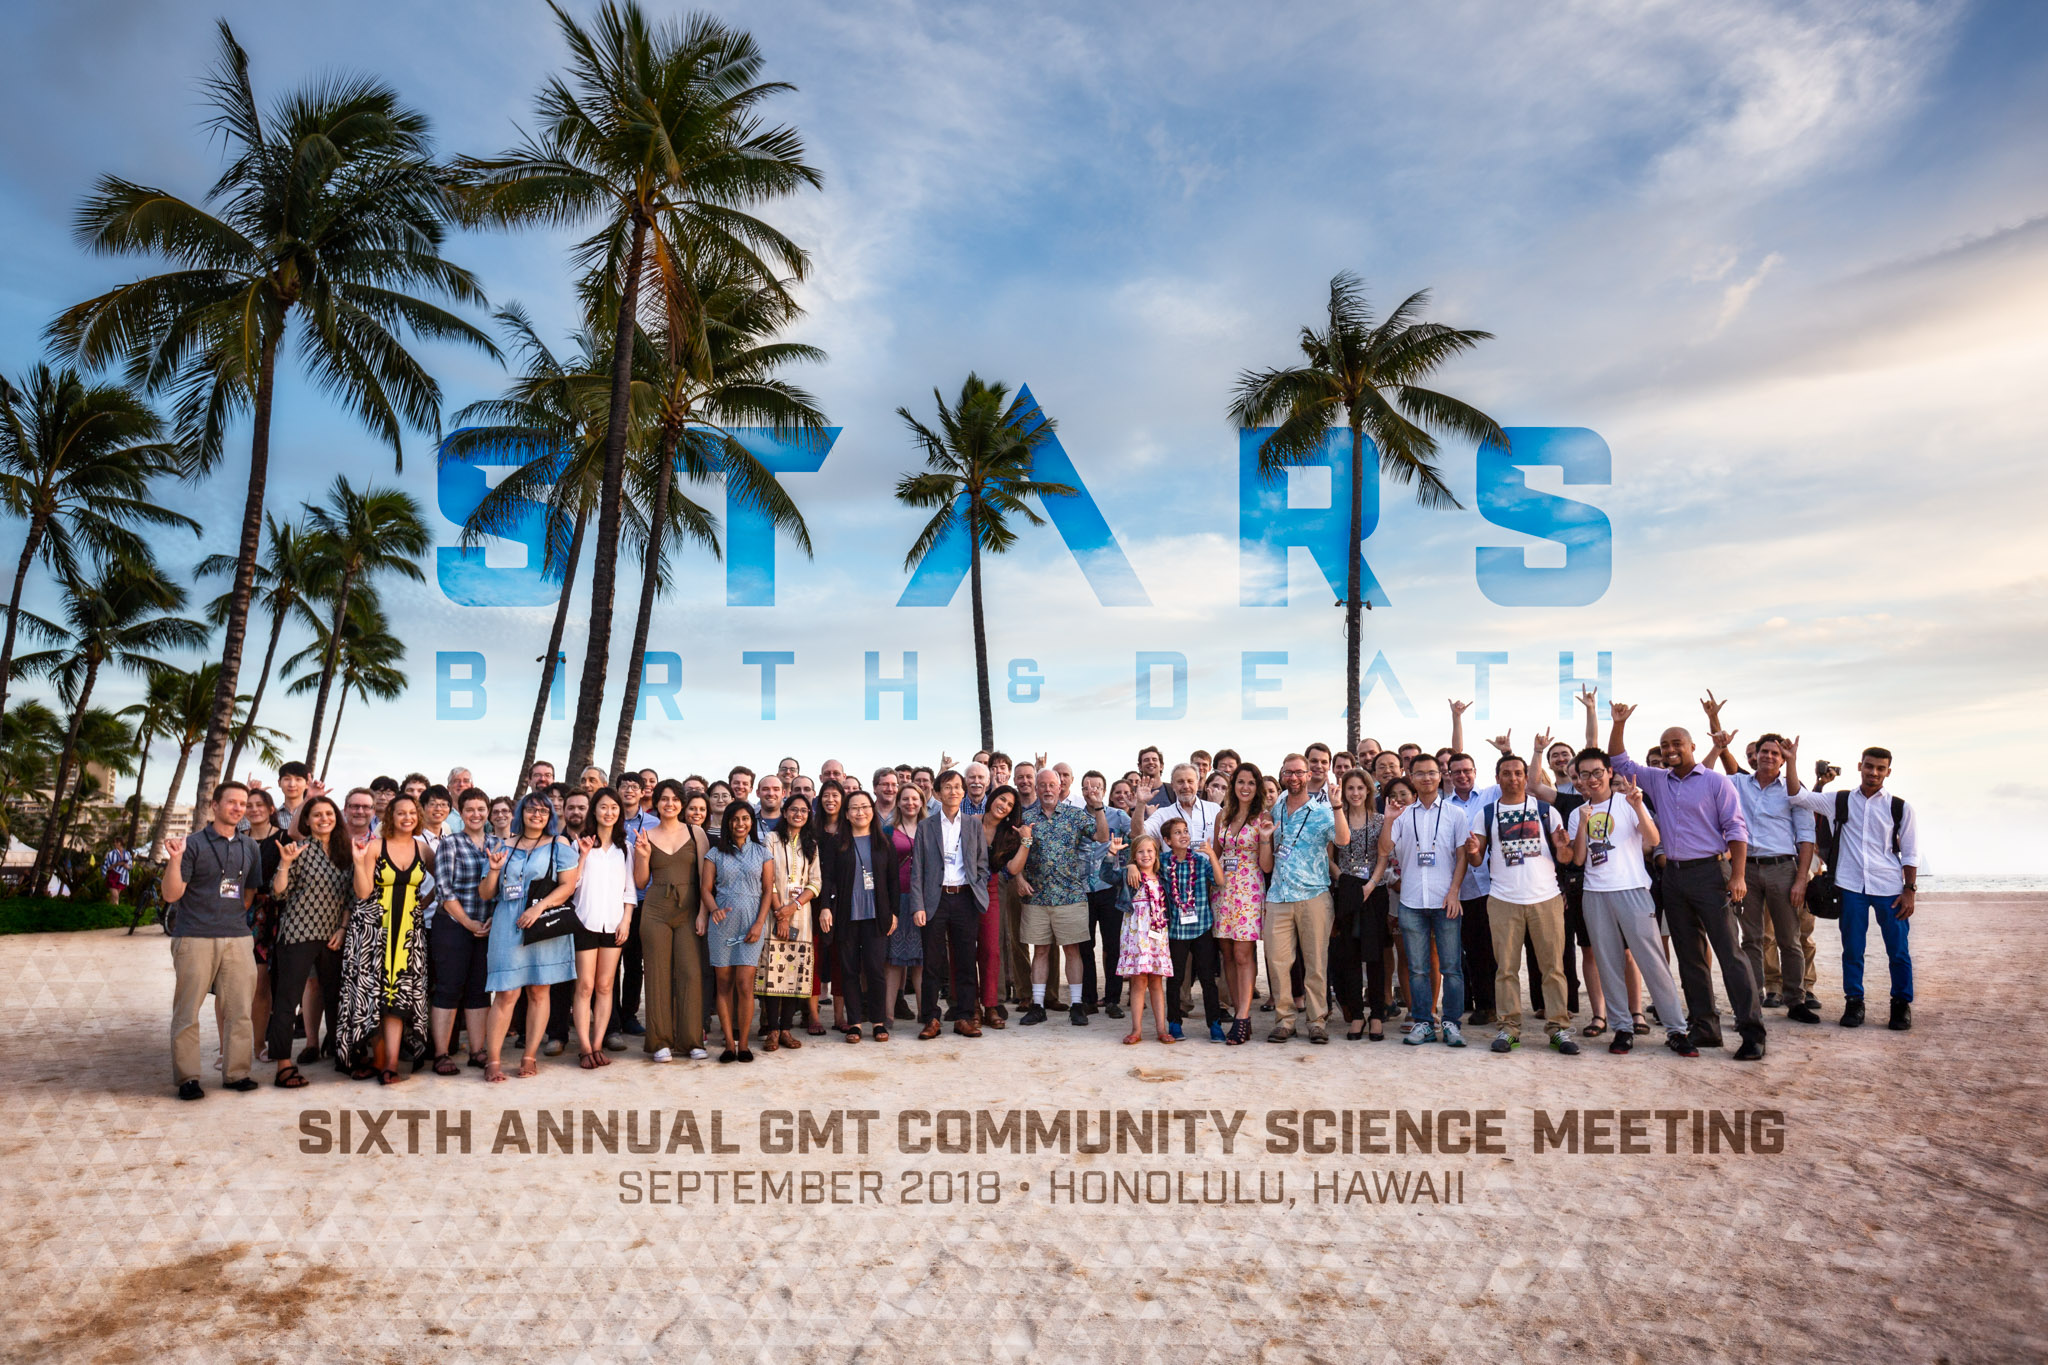 Community Science Meeting 2018 Group Photo 2.jpg